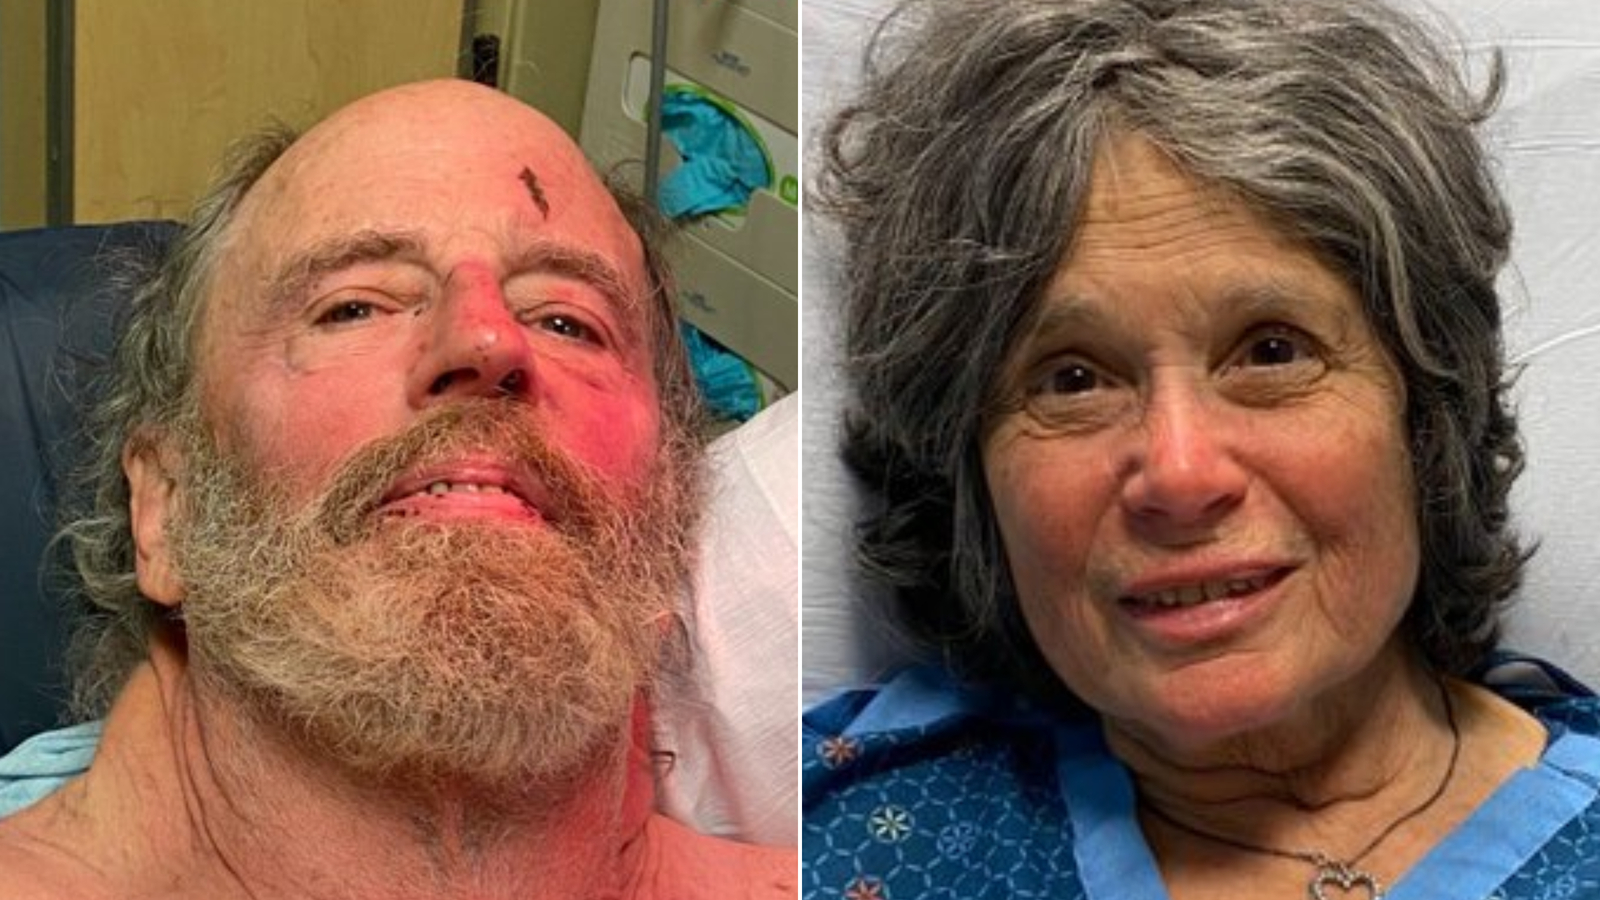 Two hikers in their 70s got lost in dense forest on Valentine's Day. On Saturday, rescuers found them alive